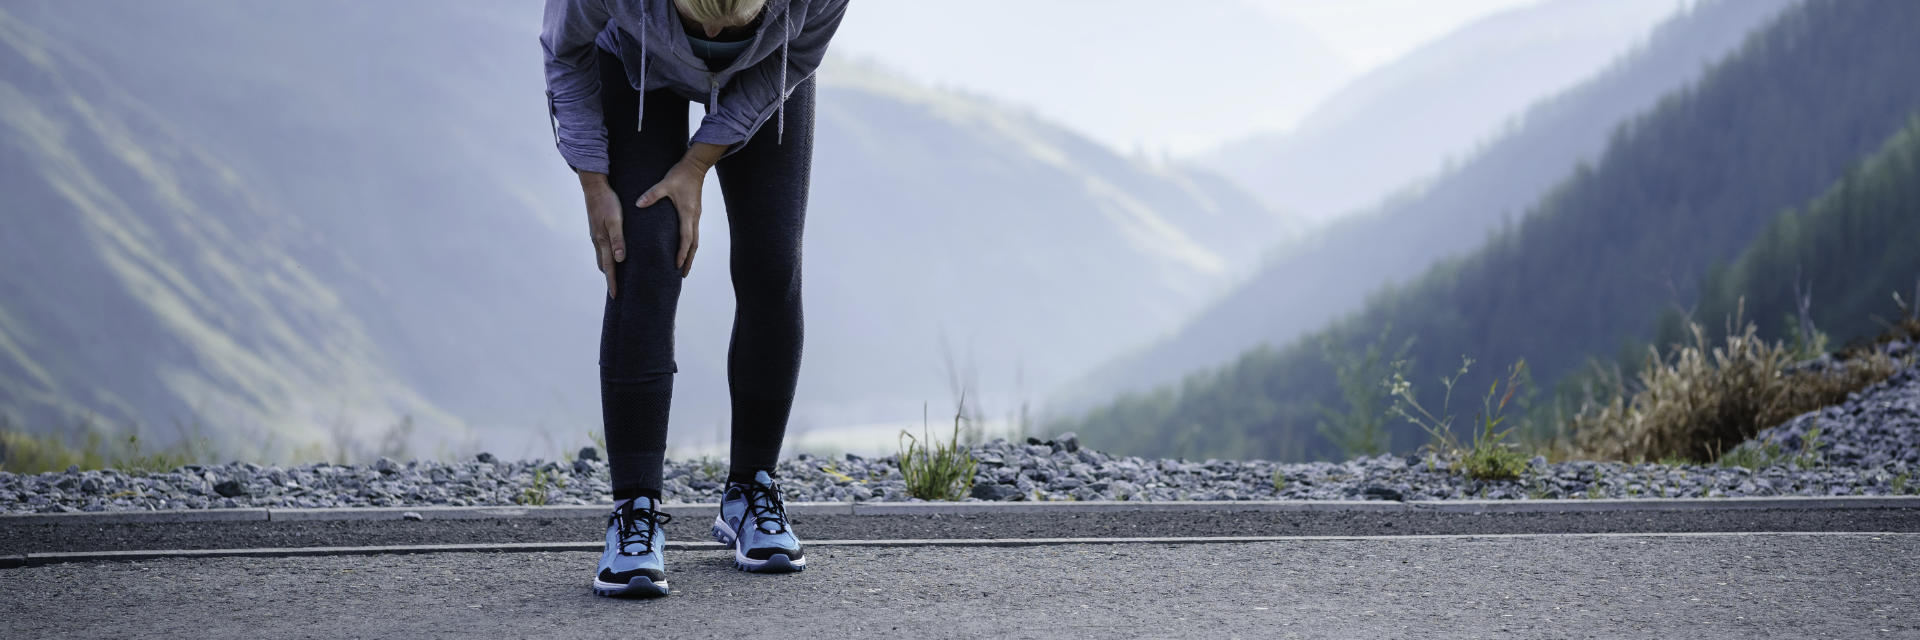 A woman running outdoors stopped by pain in the knee area.